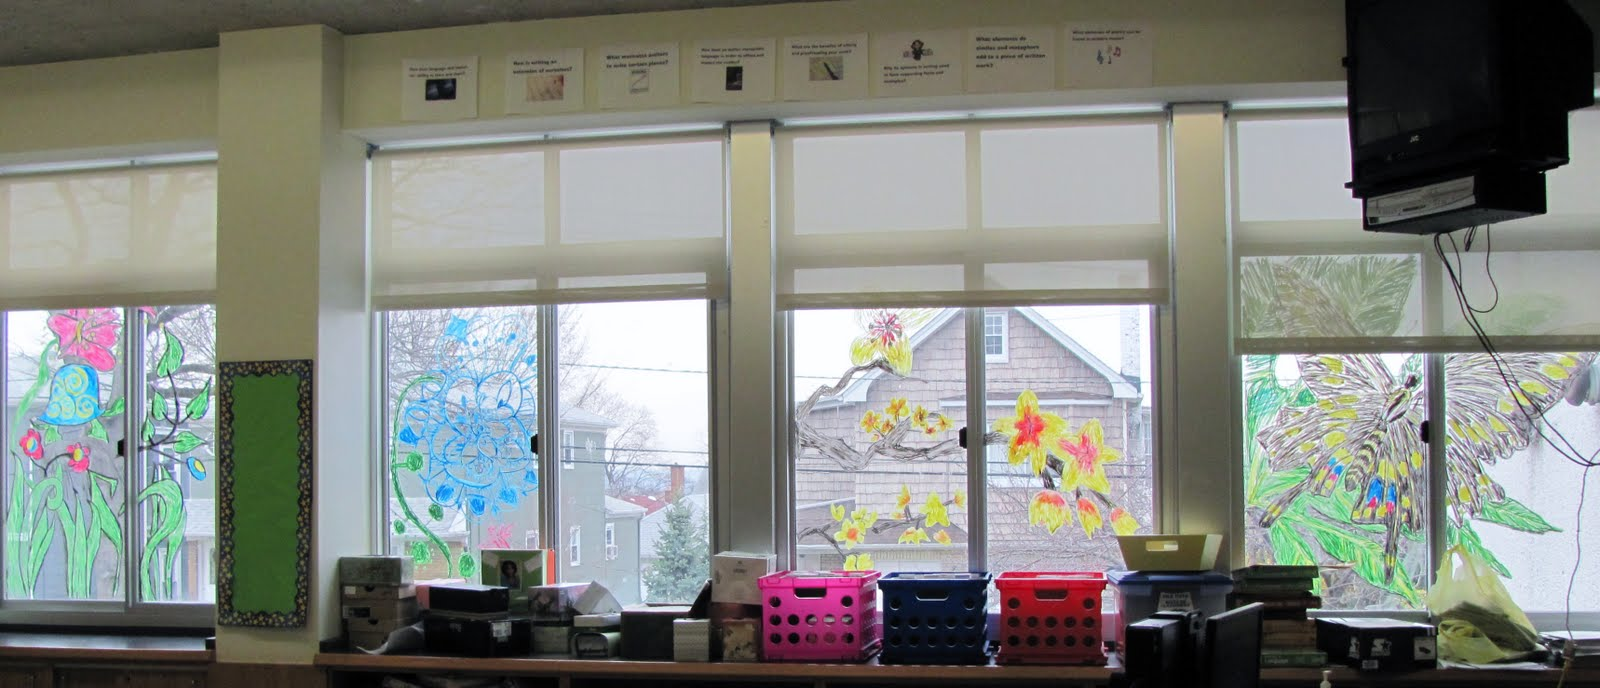 Window Decoration Ideas For Classroom ~ How to decorate a classroom beautifully teaching tofu